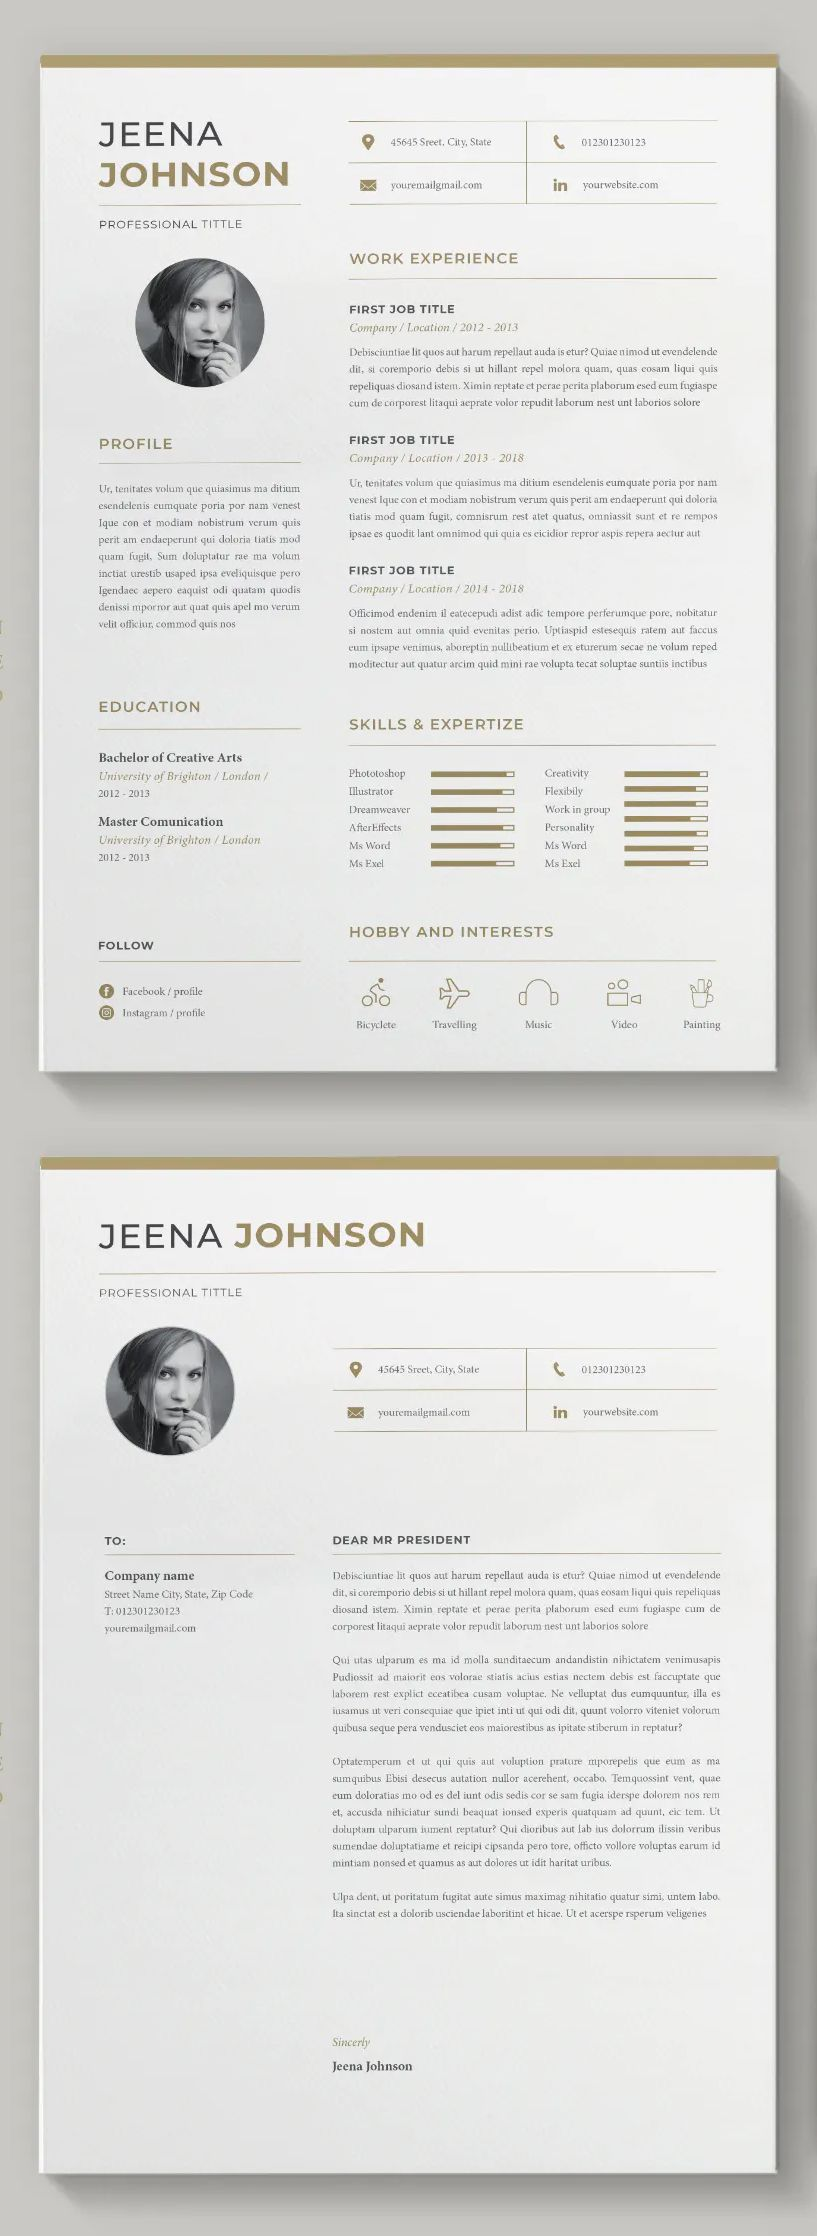 Resume Template Ms Word Indesign Indesign Resume Template Resume Design Template Resume Templates